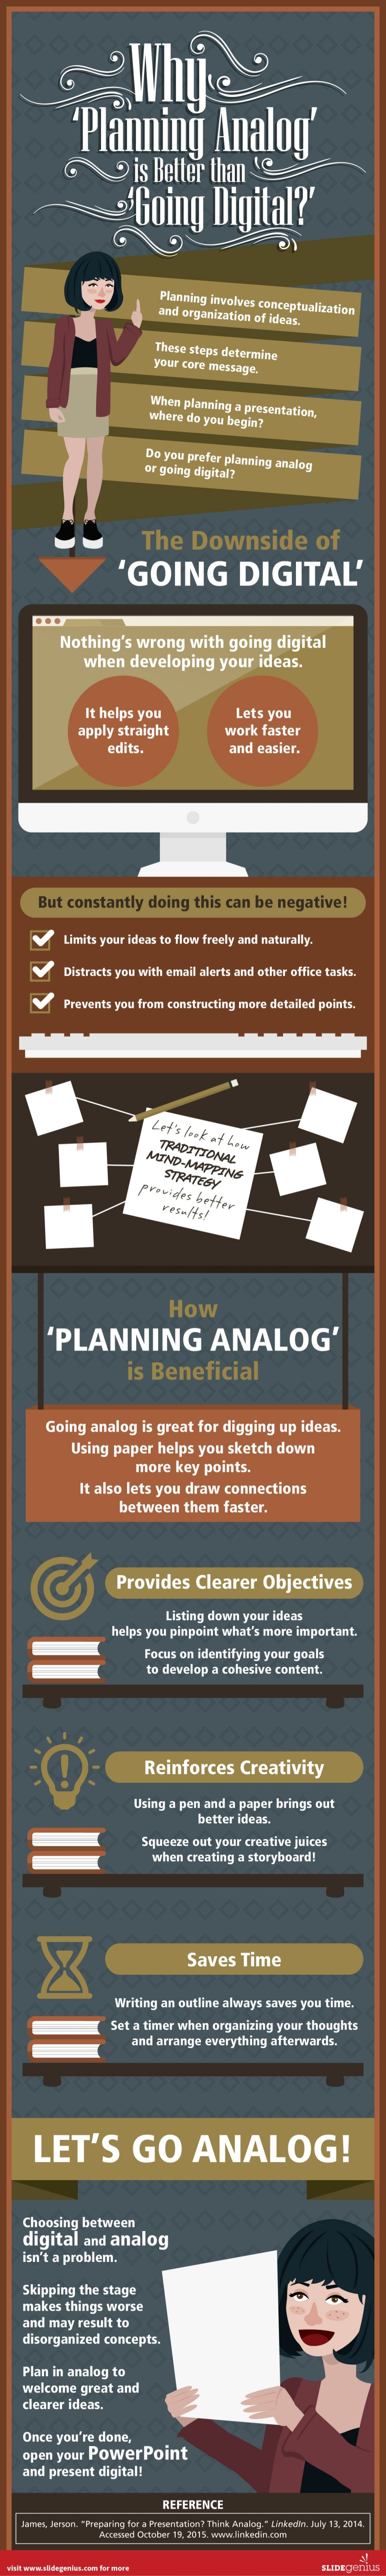 Why 'Planning Analog' is Better than 'Going Digital?'